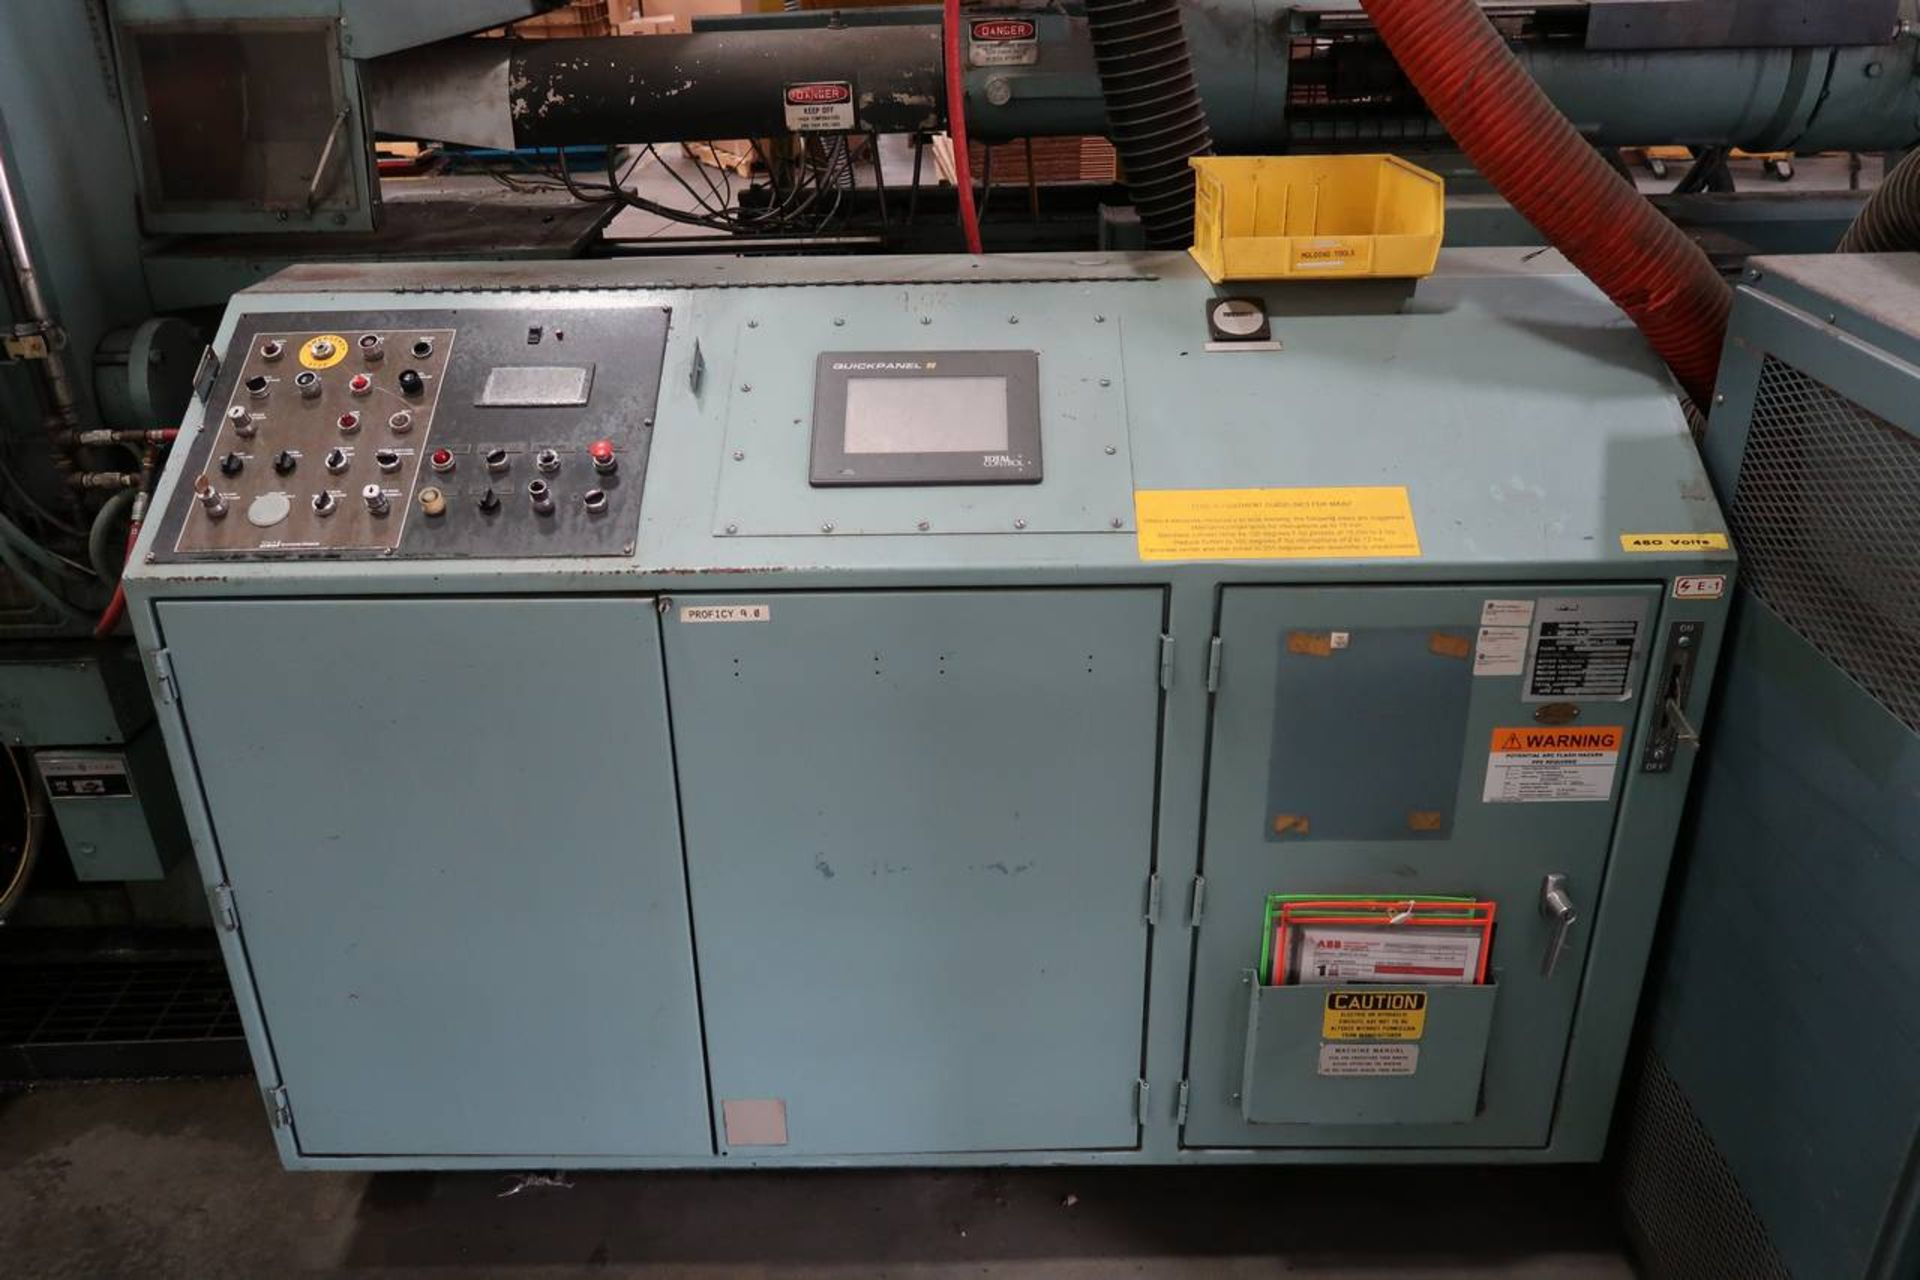 1986 HPM 400-TP-20 400-Ton Thermo Plastic Injection Molding Press - Image 17 of 40